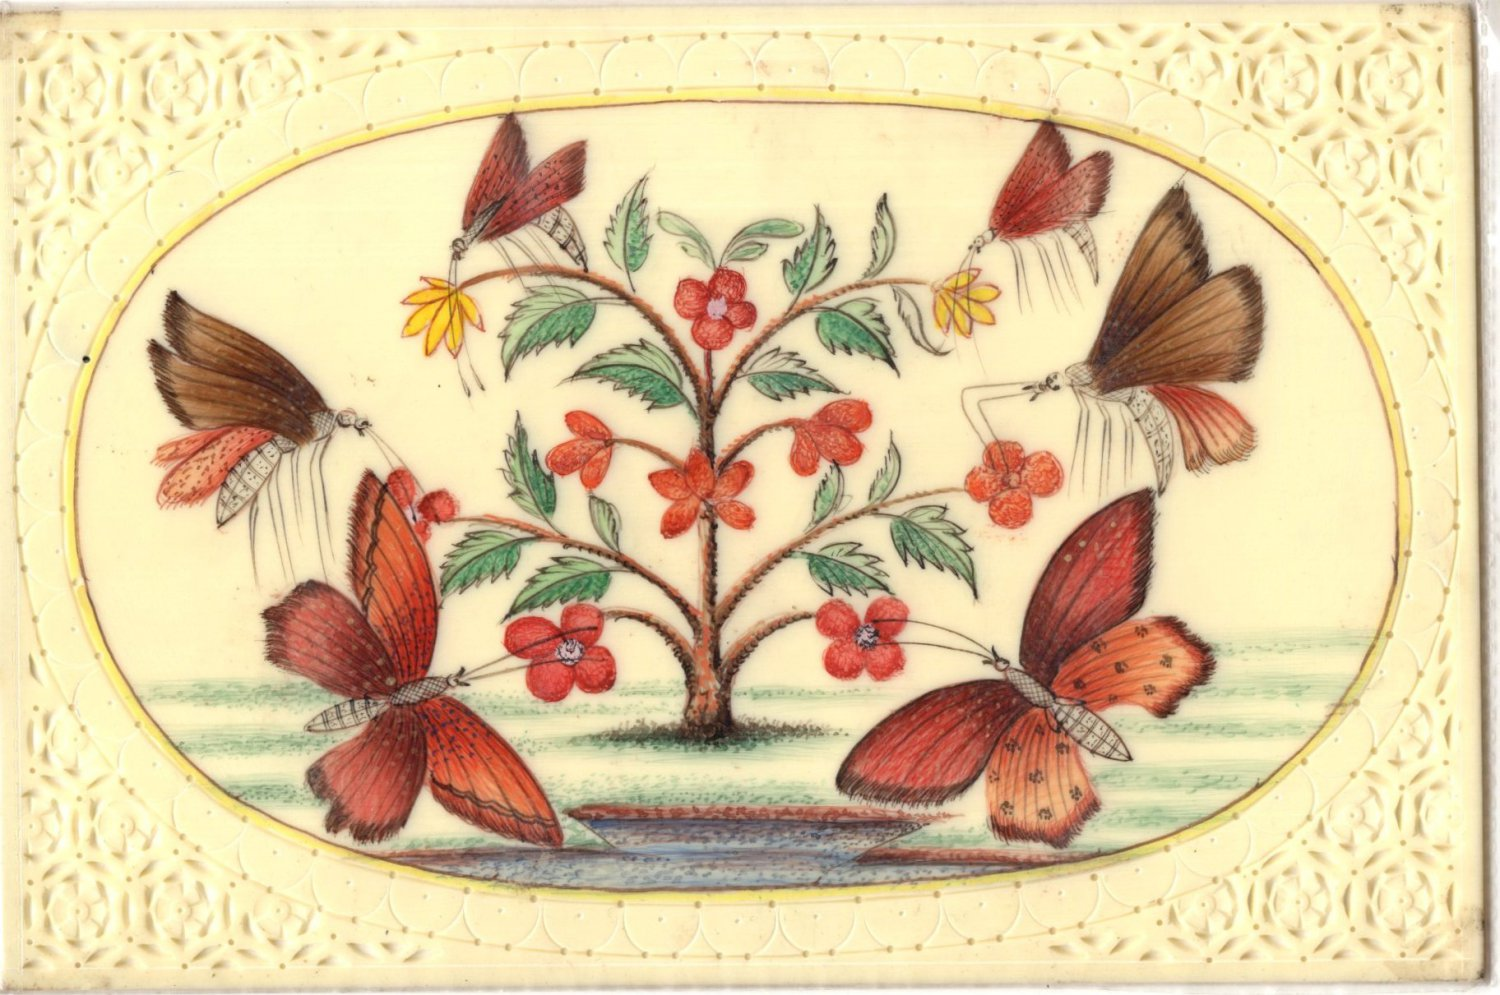 Mughal Butterfly Floral Miniature Painting Handmade Indian Ethnic Nature Art